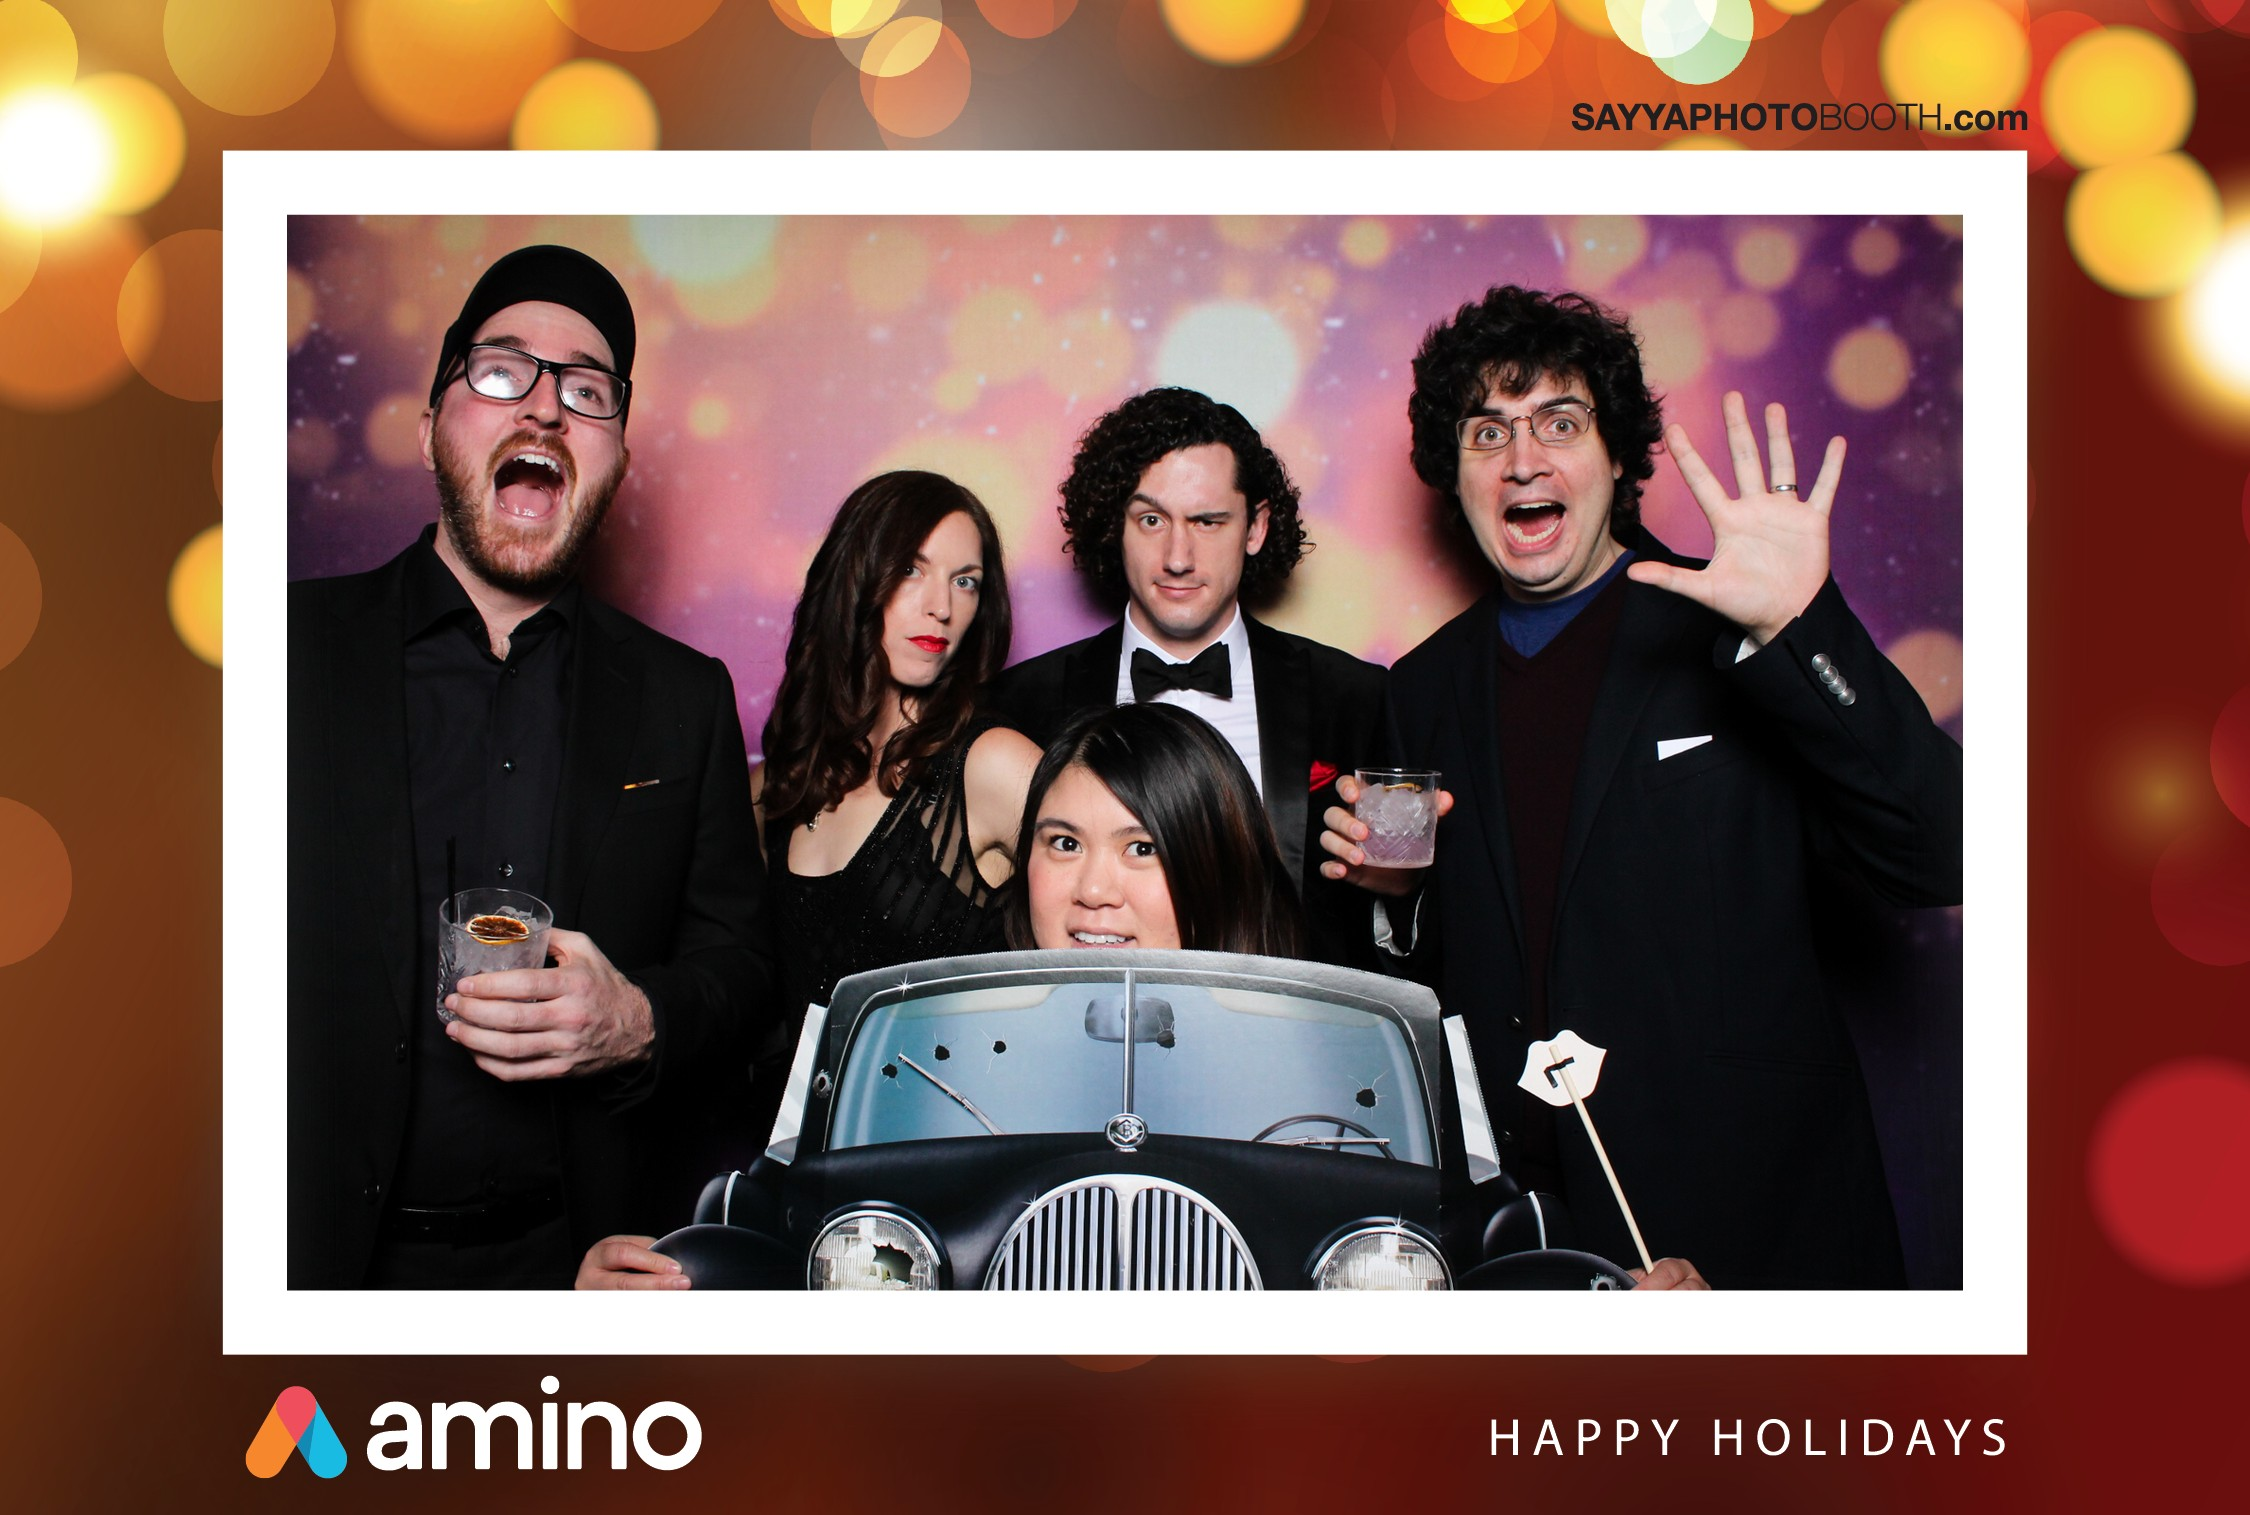 Amino Holiday Party